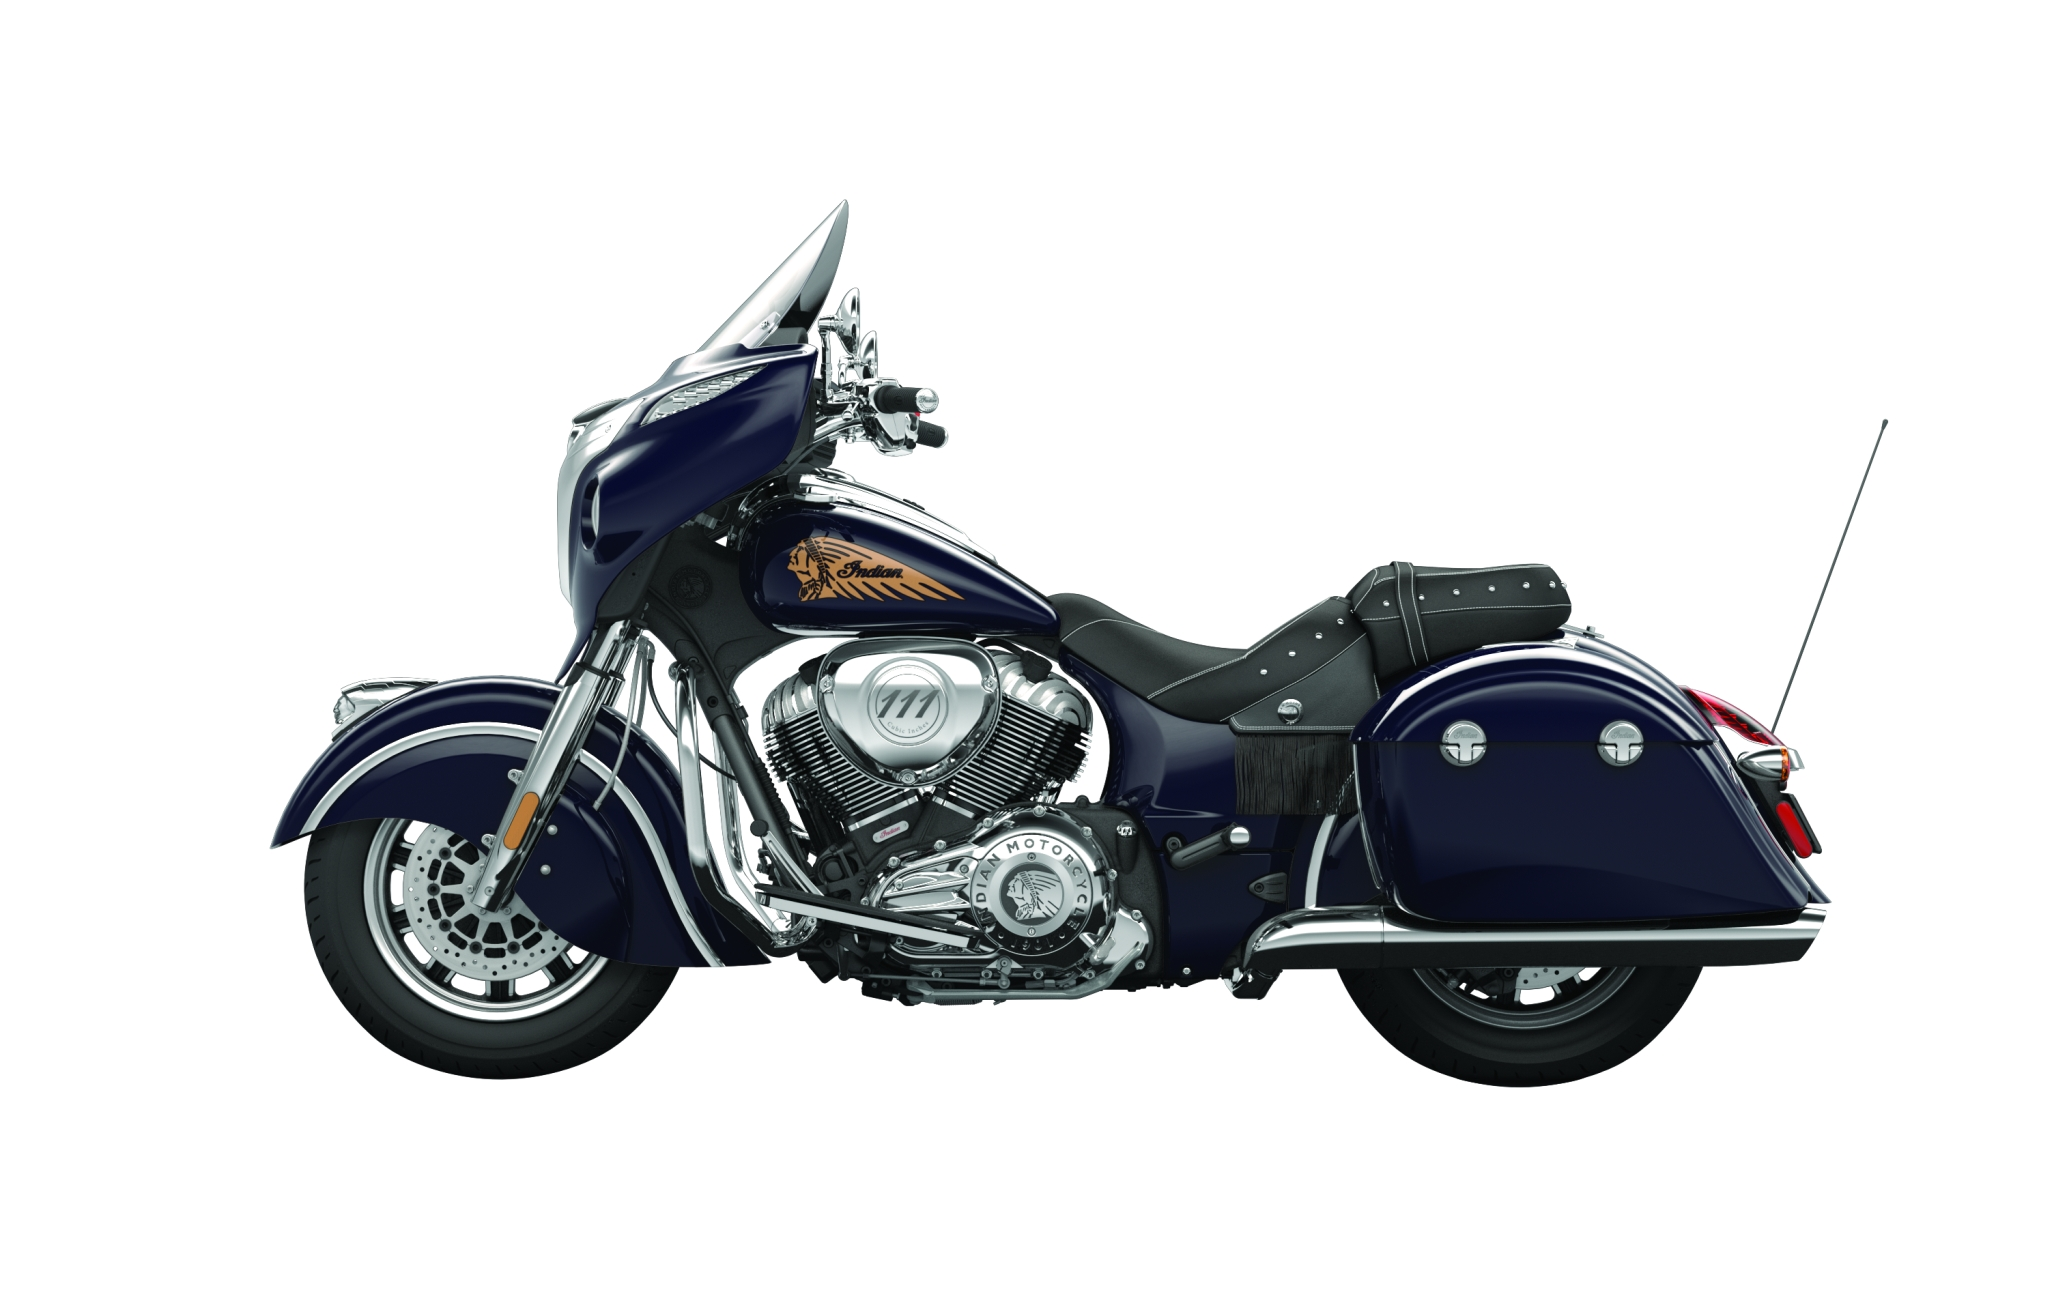 2014 Indian Chieftain The Flagship Cruiser Machine